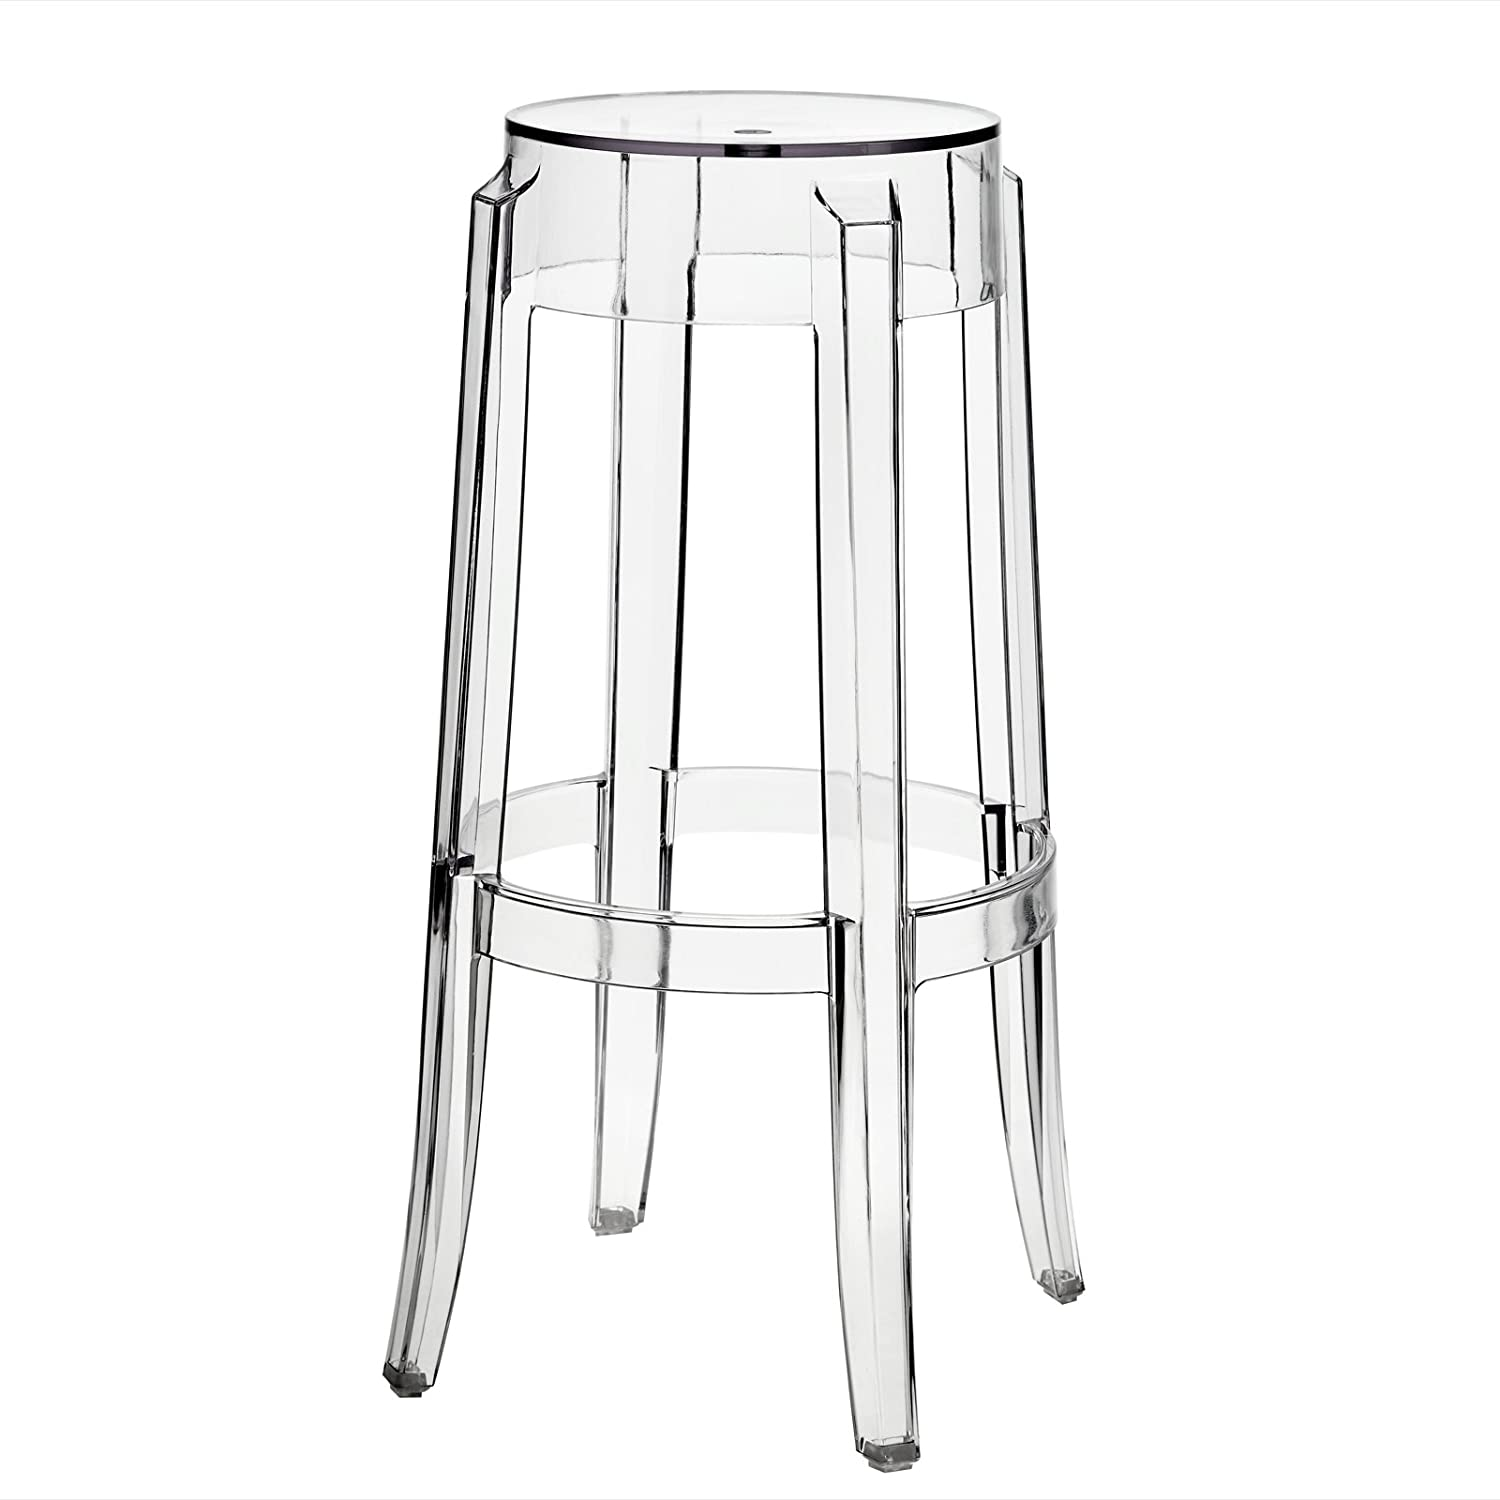 amazoncom modway philippe starck style charles ghost bar stool  - amazoncom modway philippe starck style charles ghost bar stool (set of) kitchen  dining